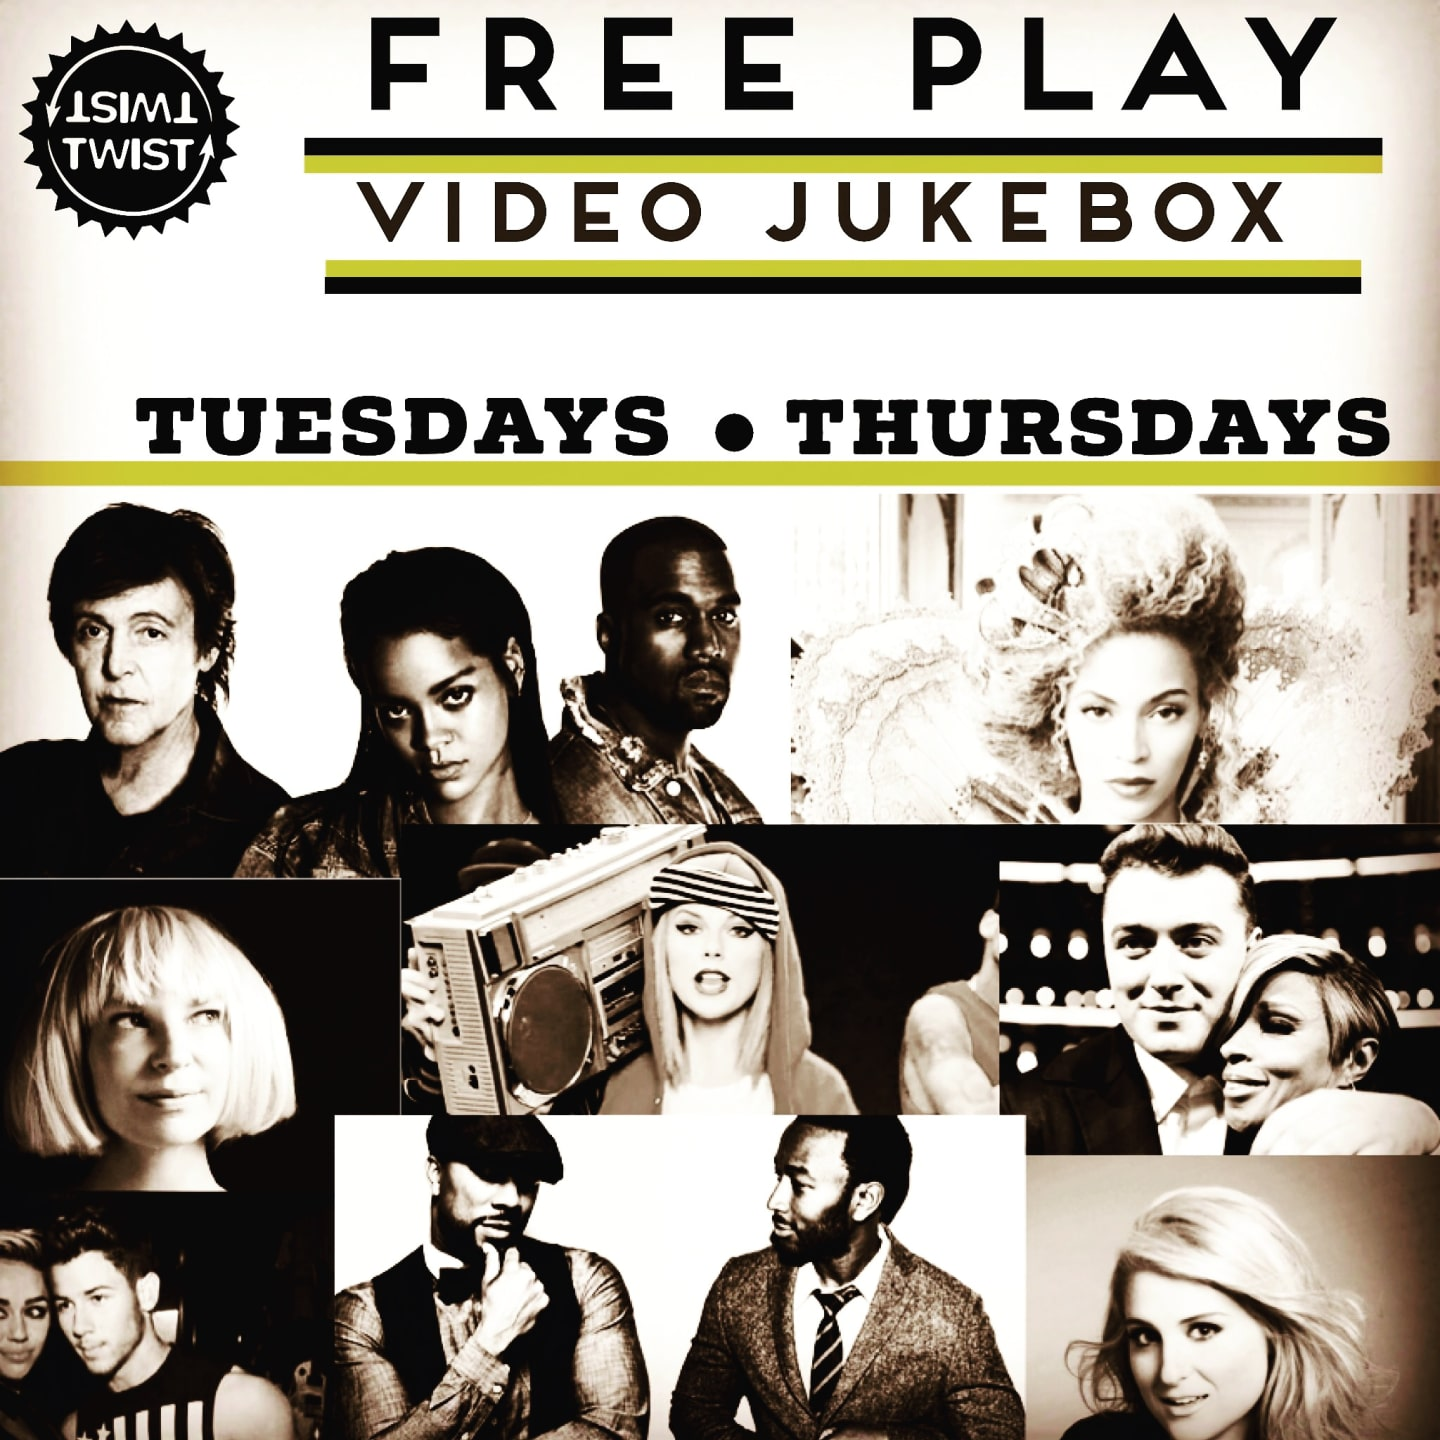 Tuesday & Thursday - Free Video Jukebox